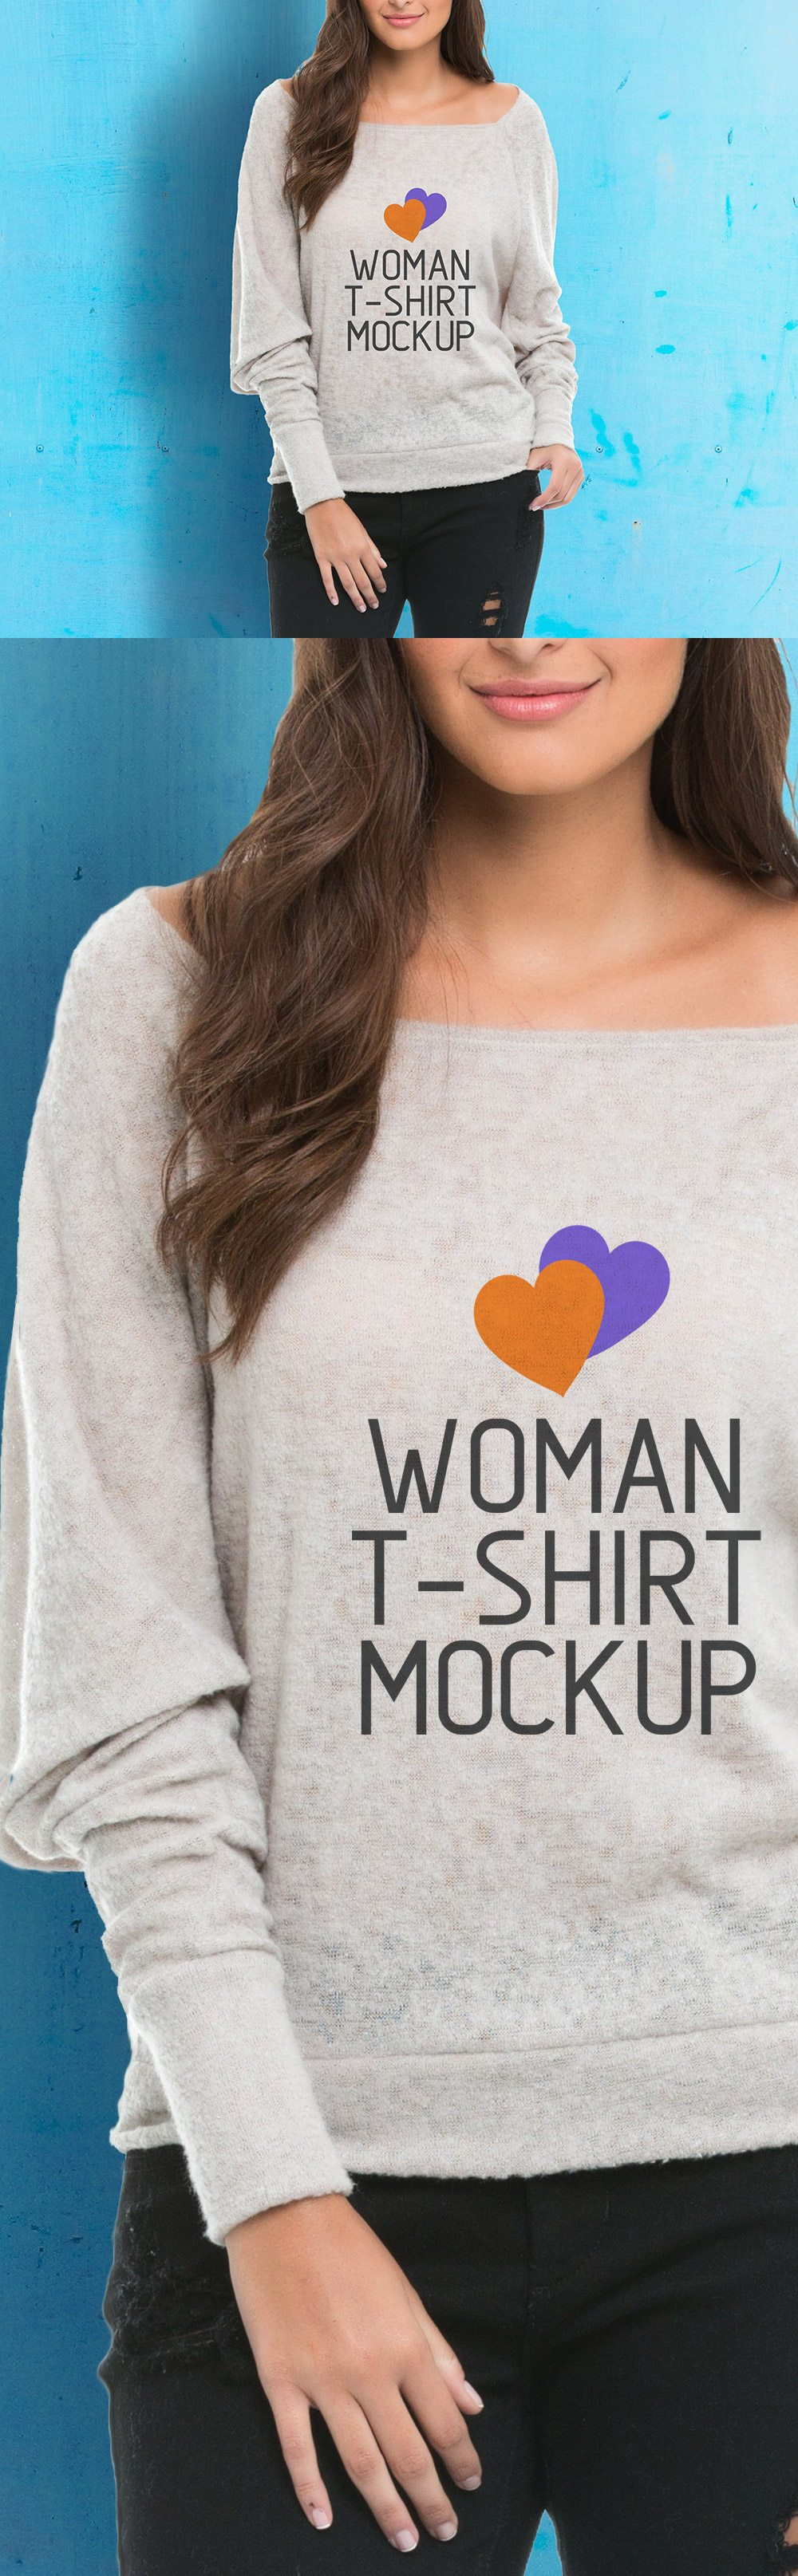 Creative Woman T-Shirt Mockup